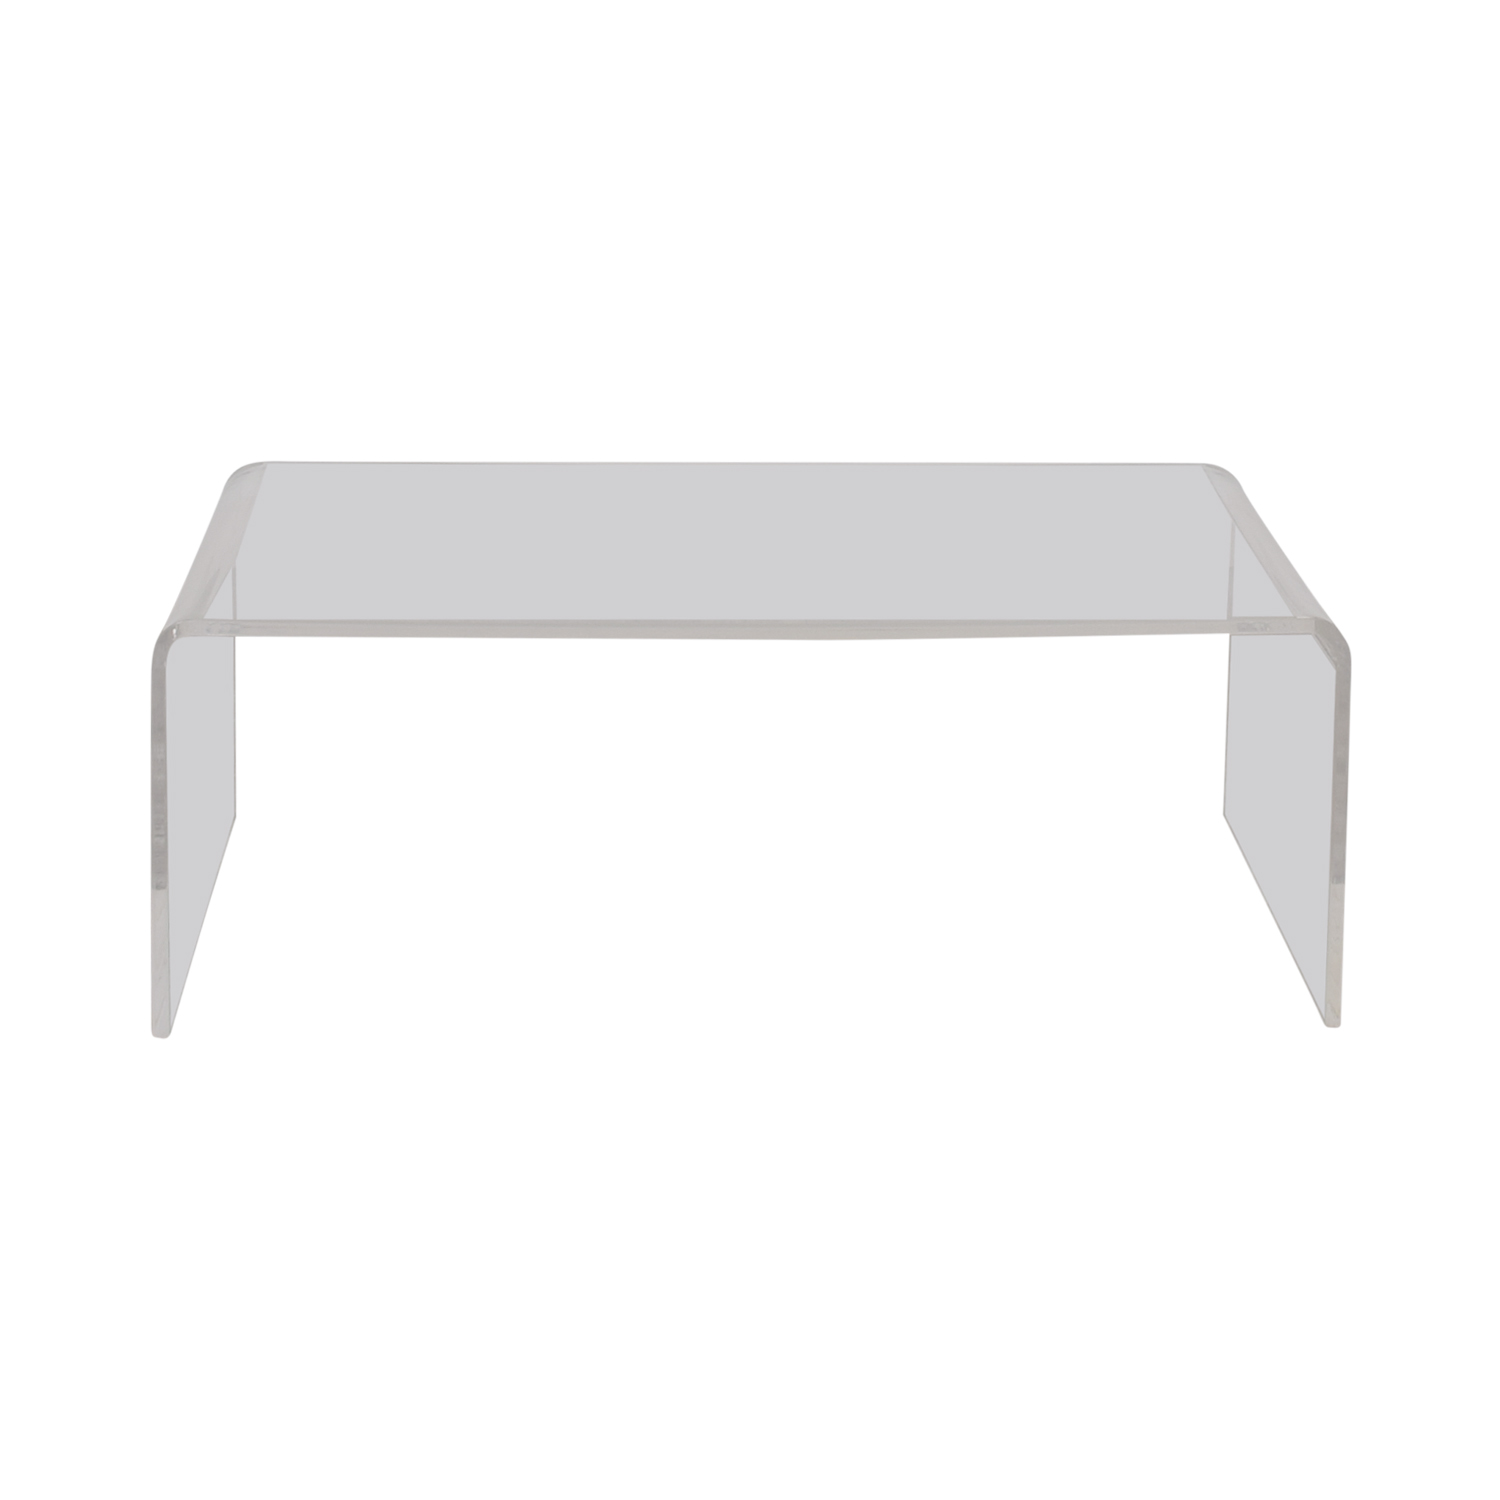 OFF CB CB Peekaboo Acrylic Coffee Table Tables - Cb2 peekaboo coffee table